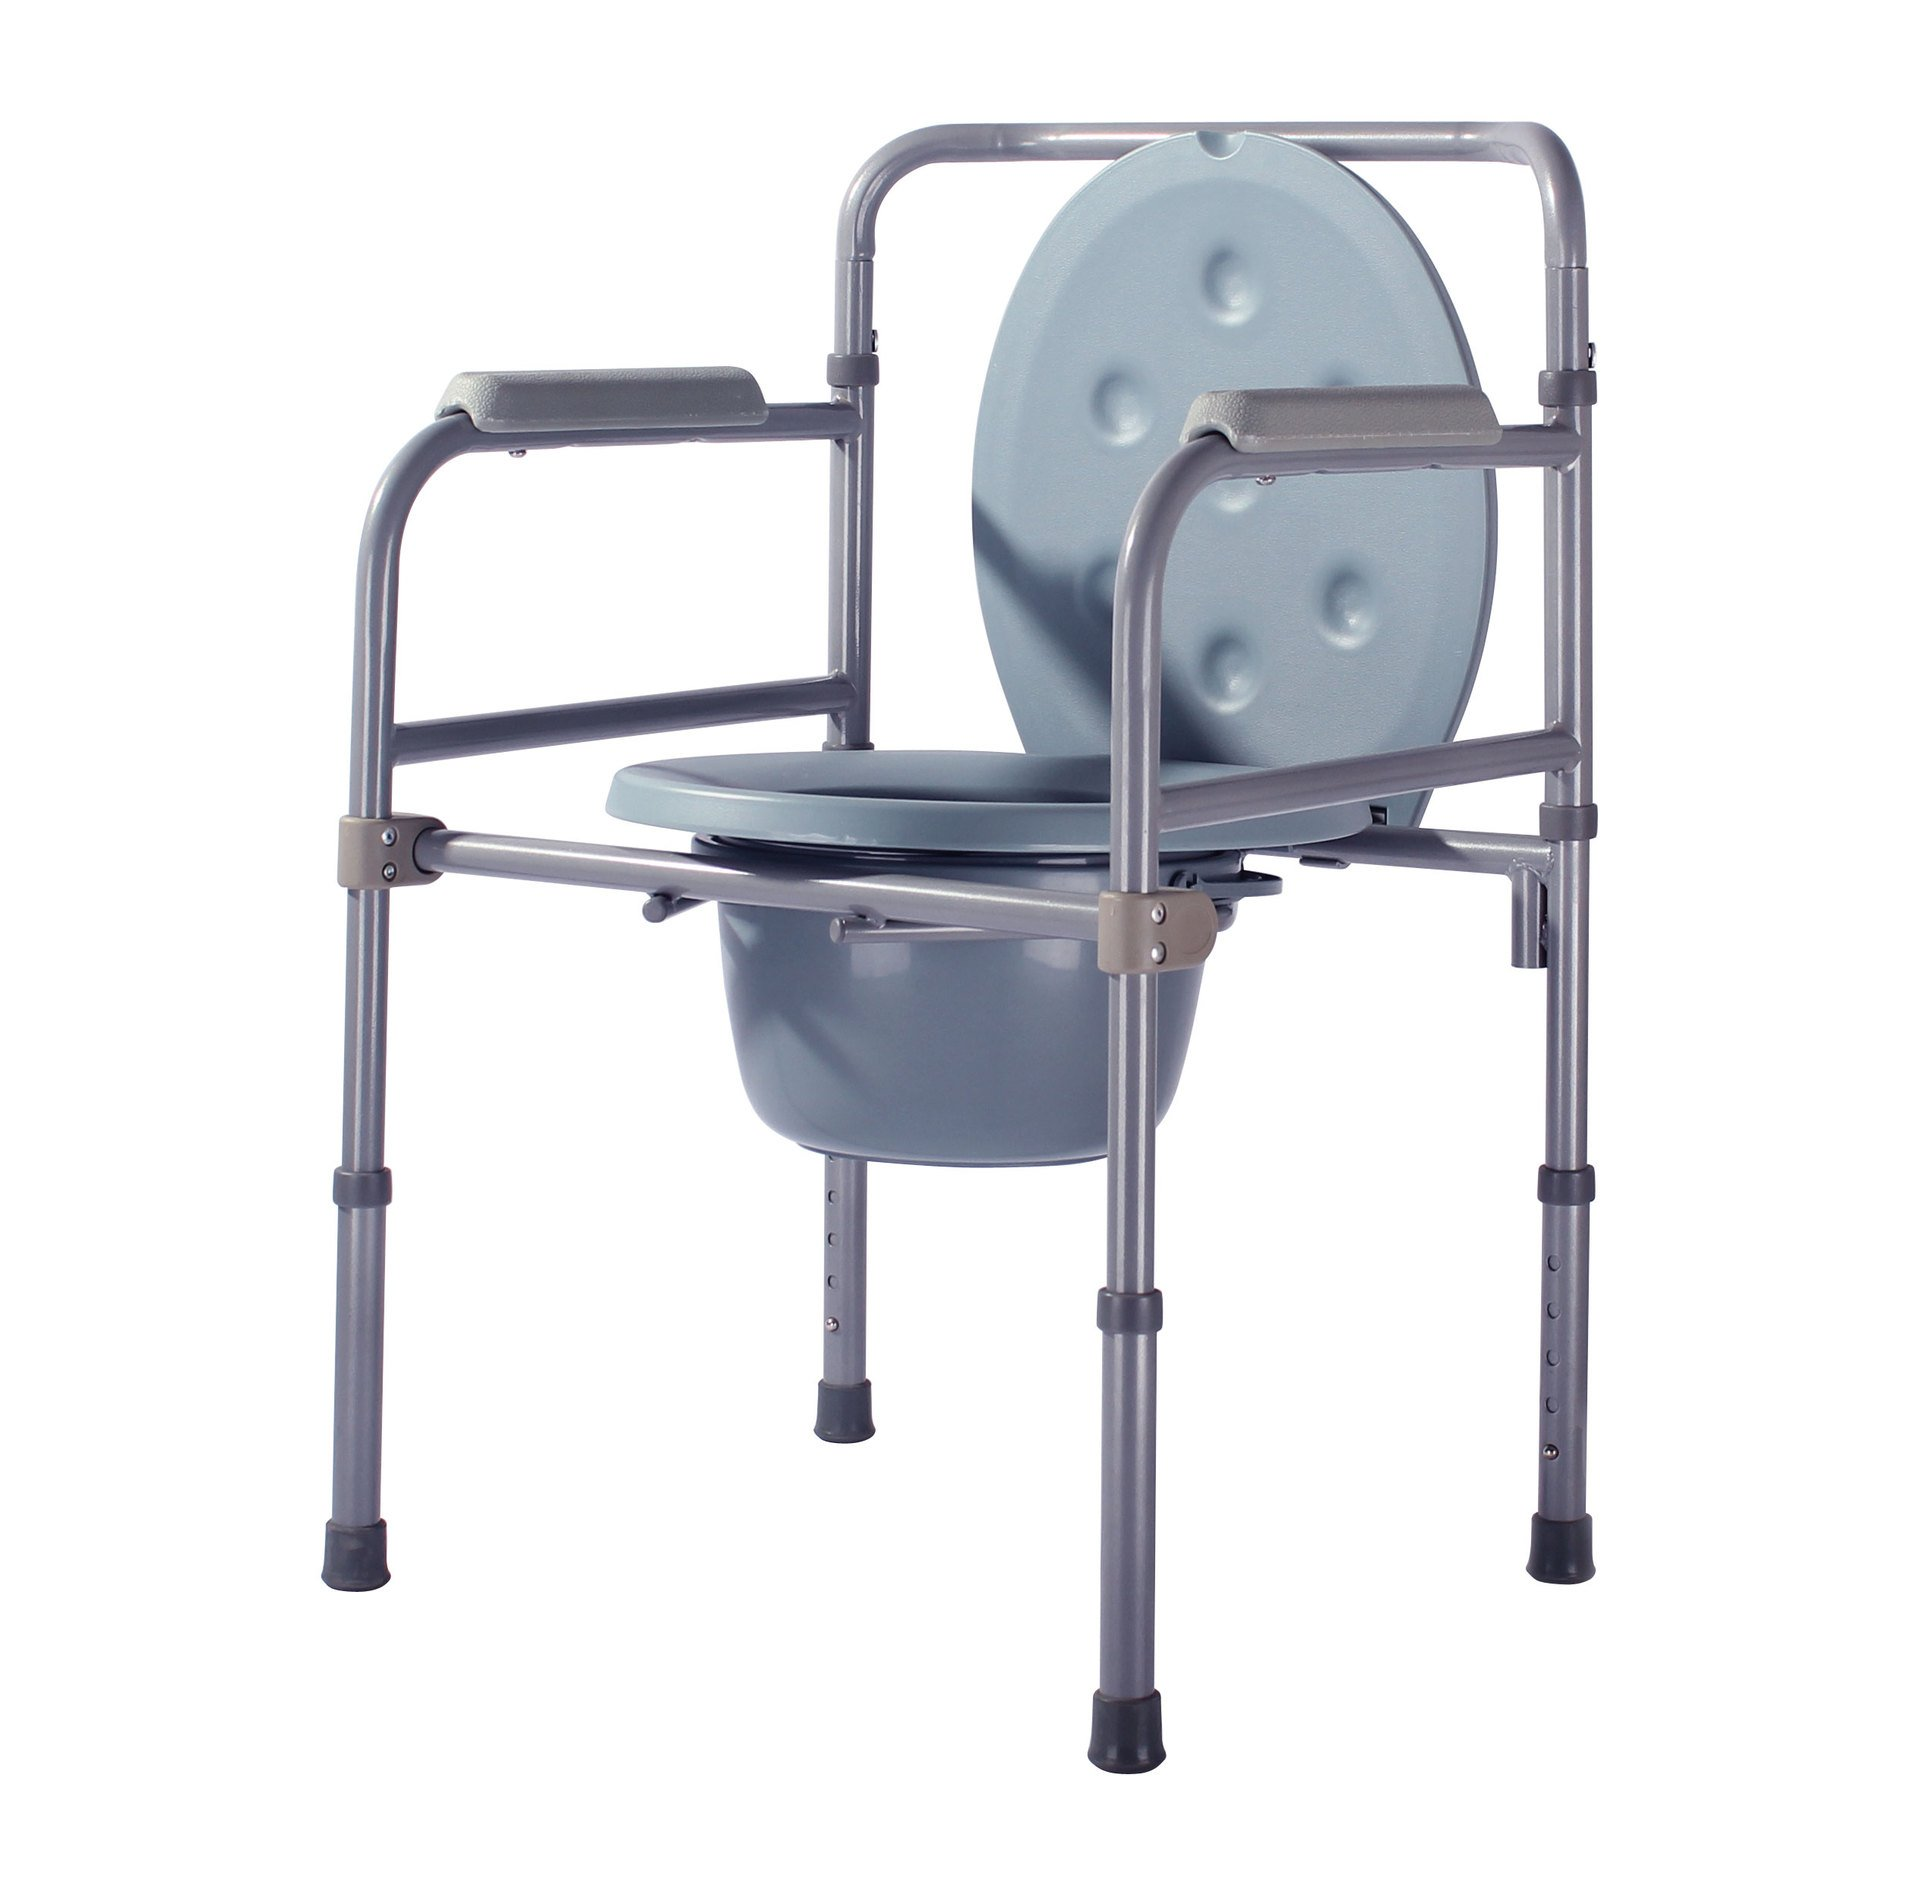 Drive Medical Bedside Commode Steel Commode Woman Disabled Elderly Mobile Toilet Seat Chair gray